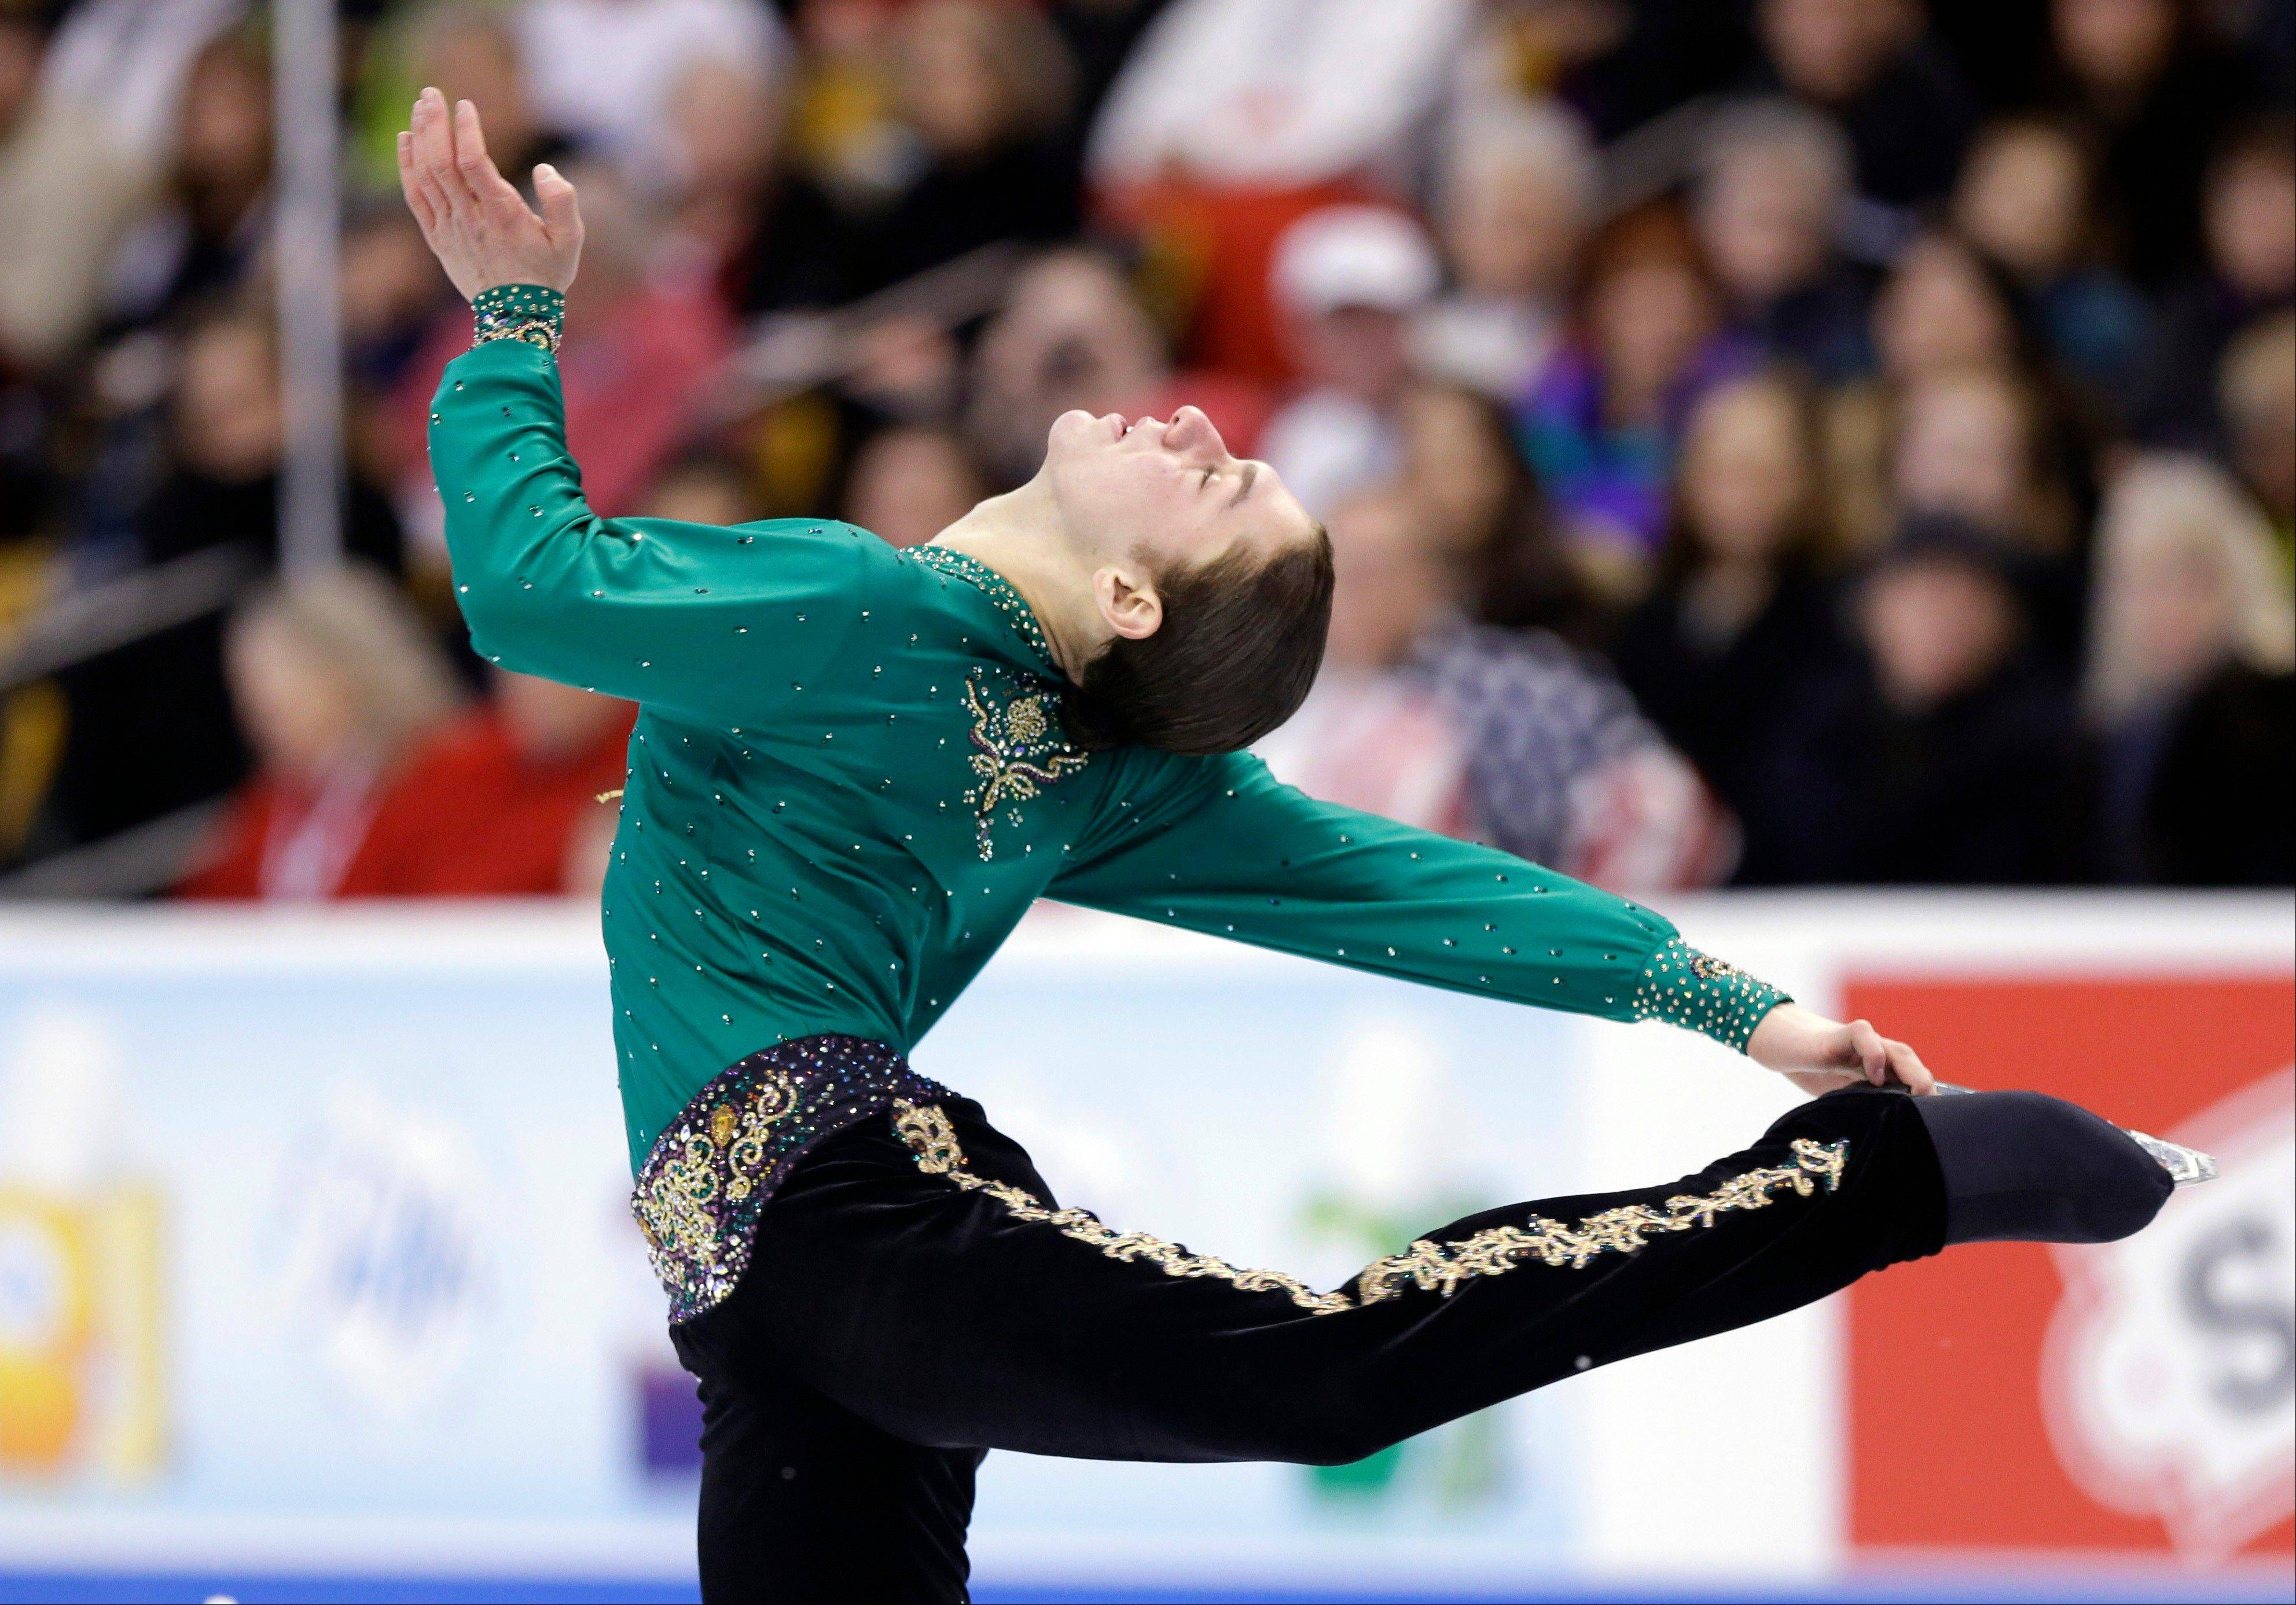 Jason Brown of Highland Park skated to Irish stepdance music Sunday at the U.S. Figure Skating Championships.